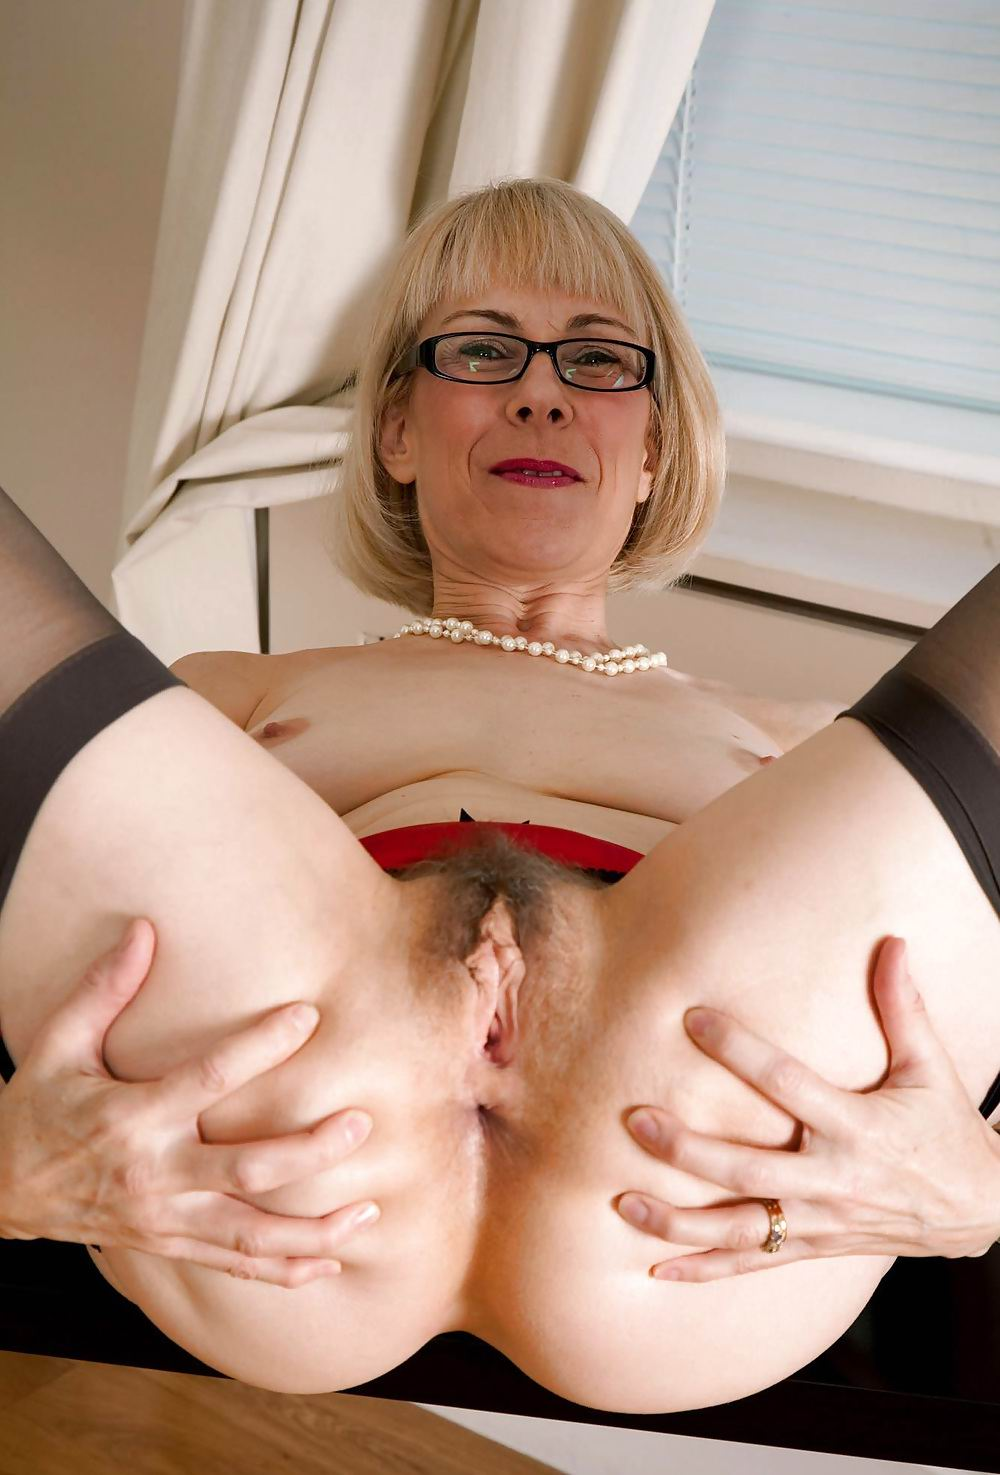 Czech slut mona lee gets every hole stuffed with four cocks 9